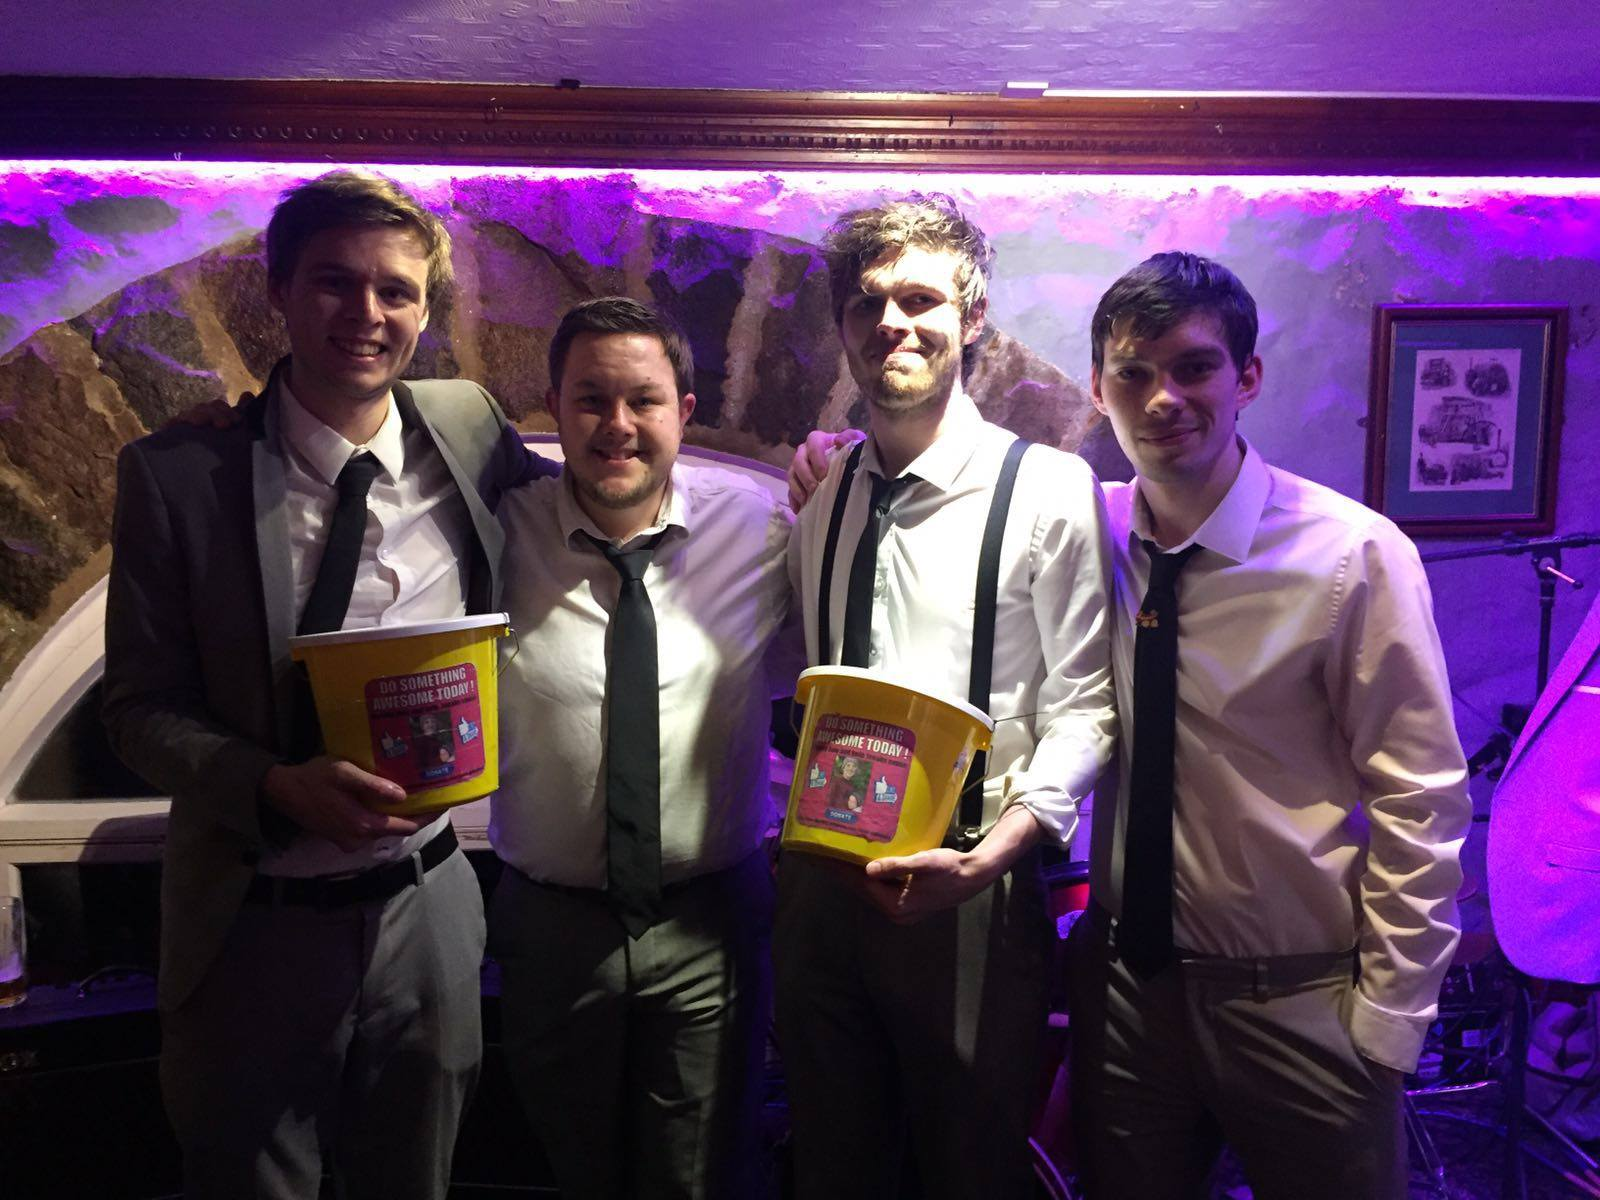 Big thanks to The Day Trippers who raised an amazing £1,103.72 for Jonah at their gig at The Thomas De La Rue. Jan 2016